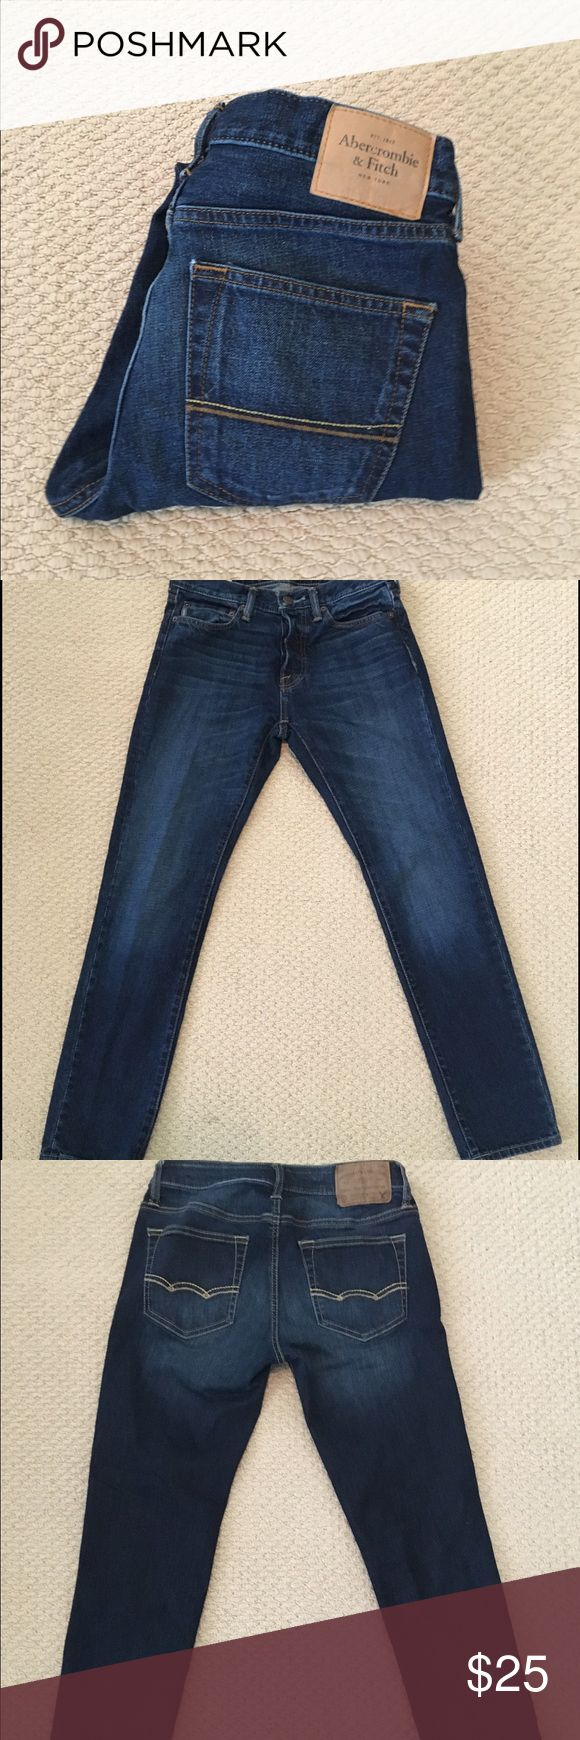 SALE!! EUC Abercrombie & Fitch Skinny Jeans 28x30 These men's skinny jeans from Abercrombie & Fitch are in perfect condition! The great, classic blue color make these jeans a great addition to your closet! Size 28x30 Abercrombie & Fitch Jeans Skinny